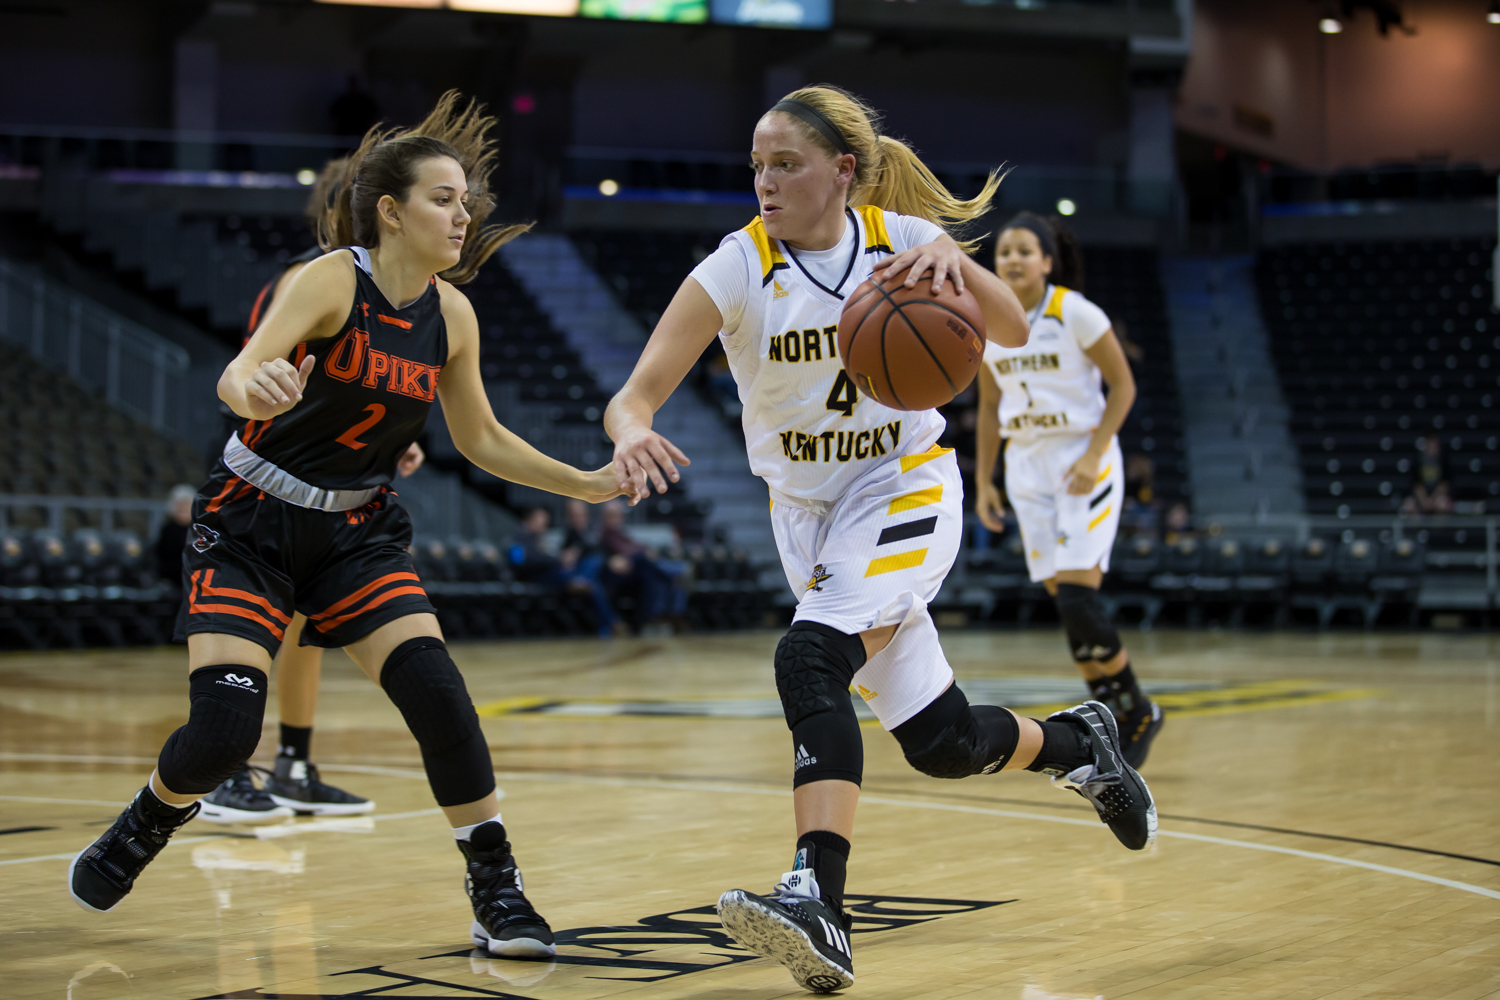 Taylor Clos (4) drives toward the basket during the game against University of Pikeville.